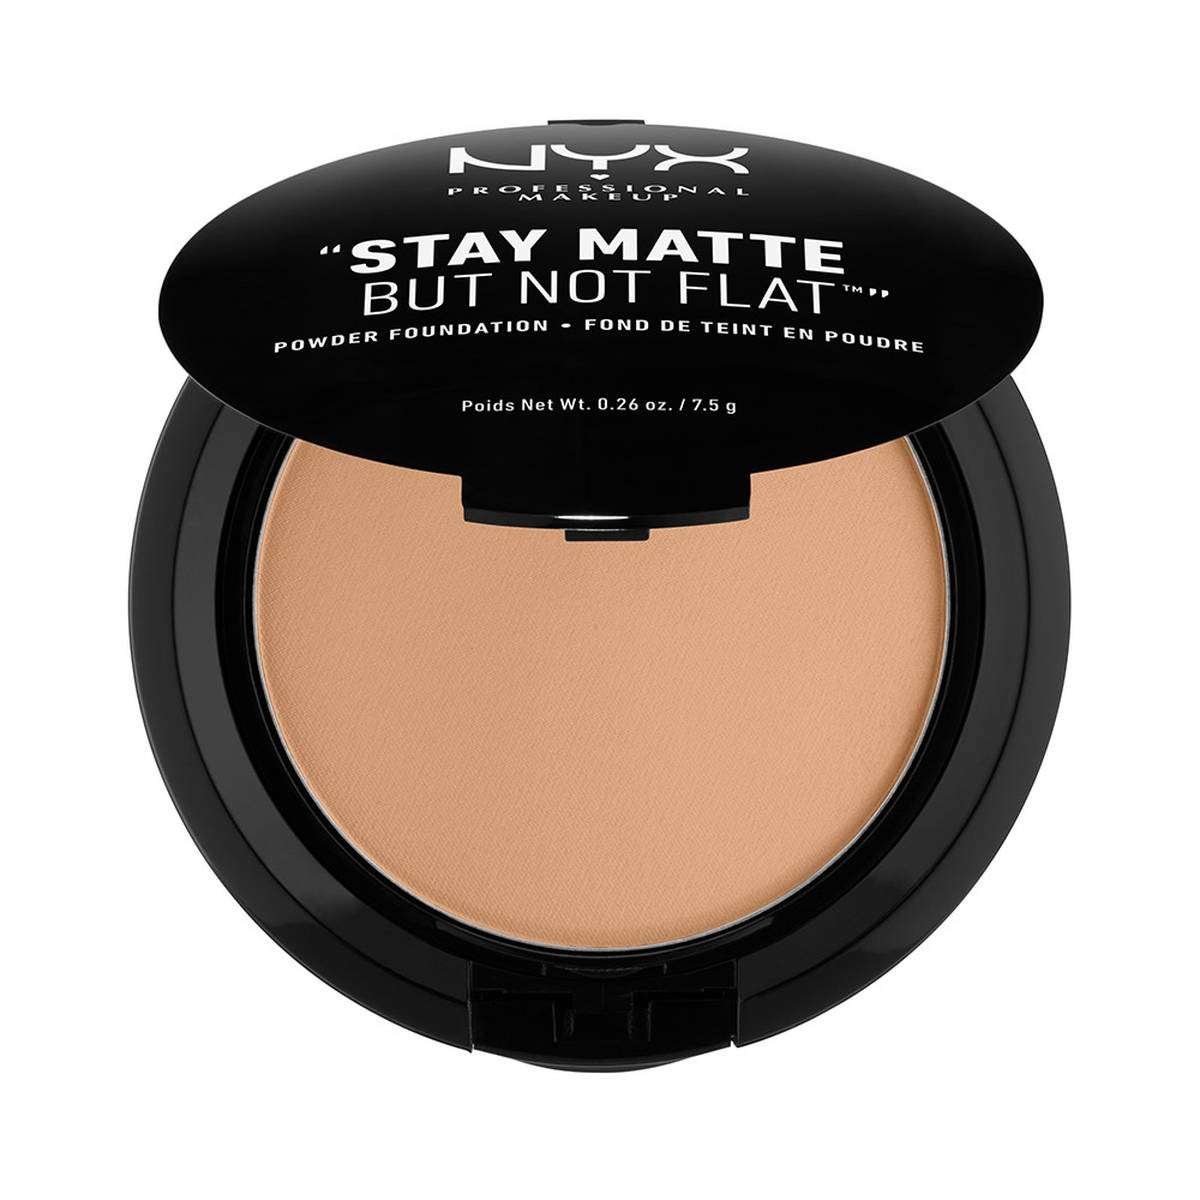 Puder Foundation - Stay Matte But Not Flat Powder Foundation